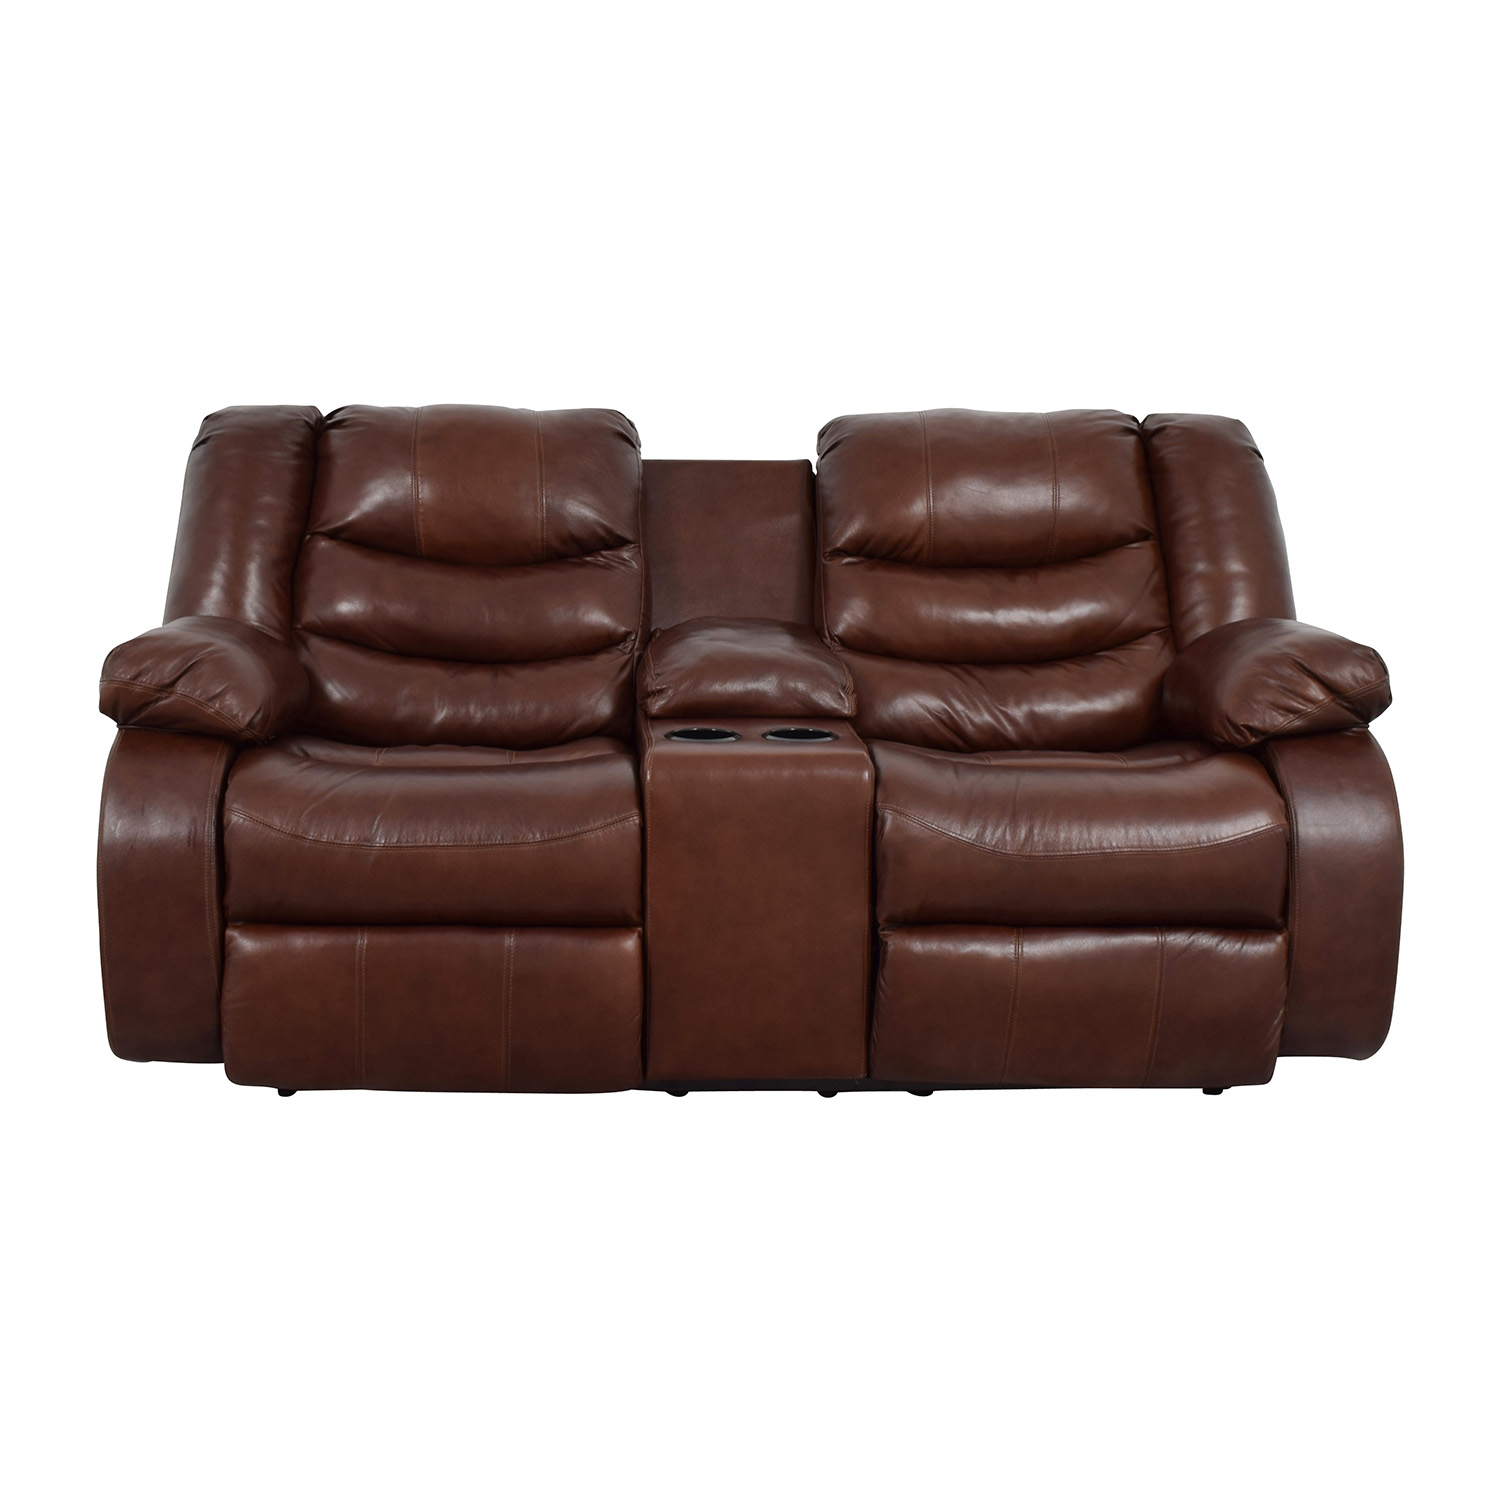 Ashley Furniture Recliner Chairs 90 Off Ashley Furniture Ashley Furniture Brown Leather